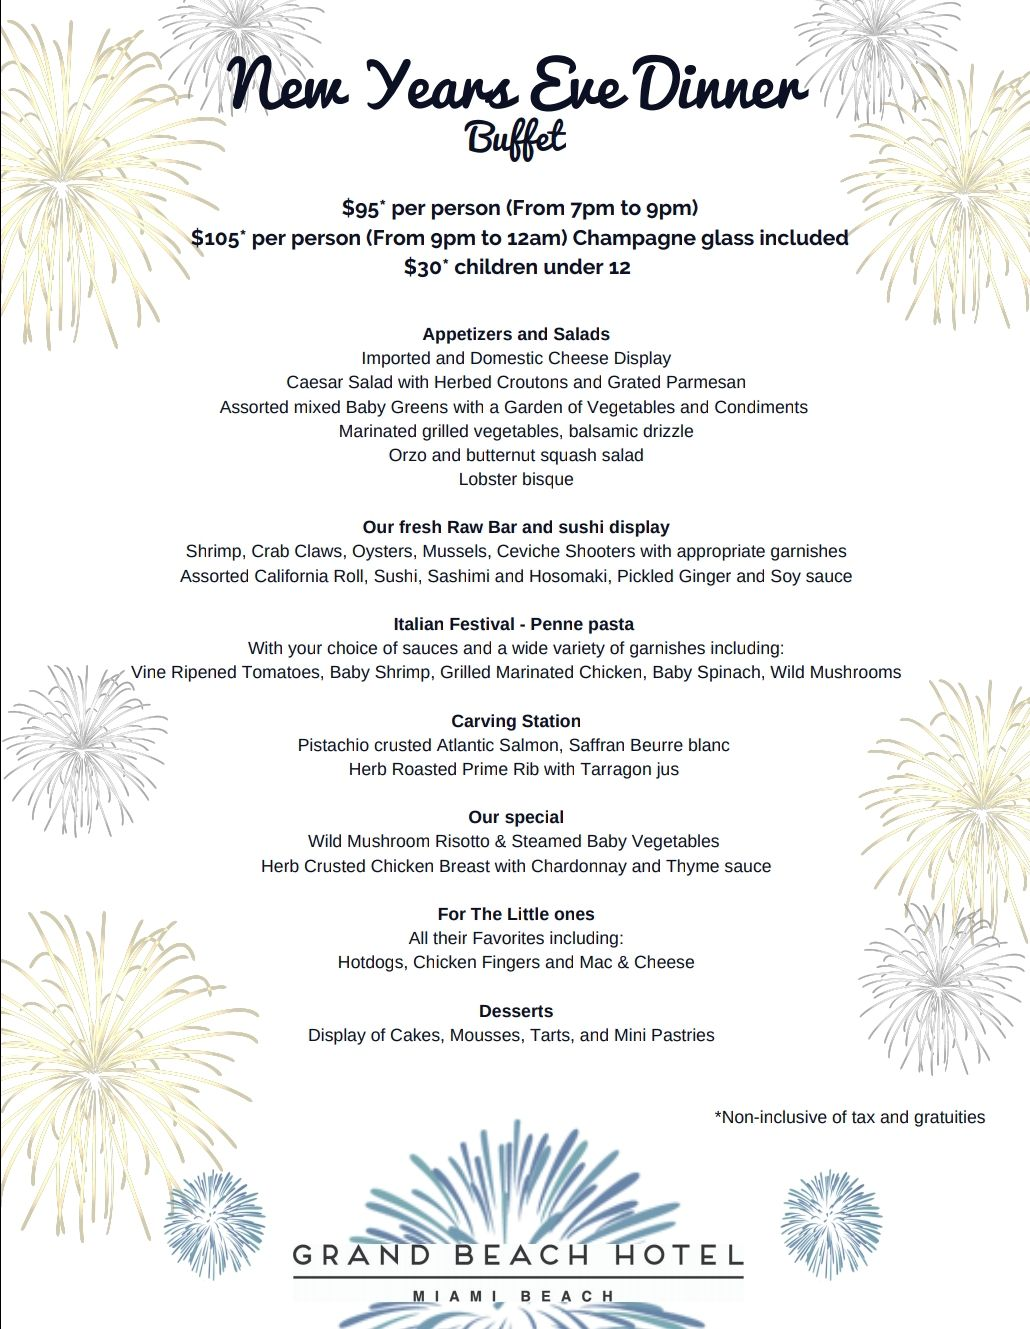 Join Us At Chez Gaston Restaurant As We Send Off 2018 And Welcome The New Year 2019 Our Festive New Year S Eve Dinner Cheese Display Grand Beach Hotel Buffet